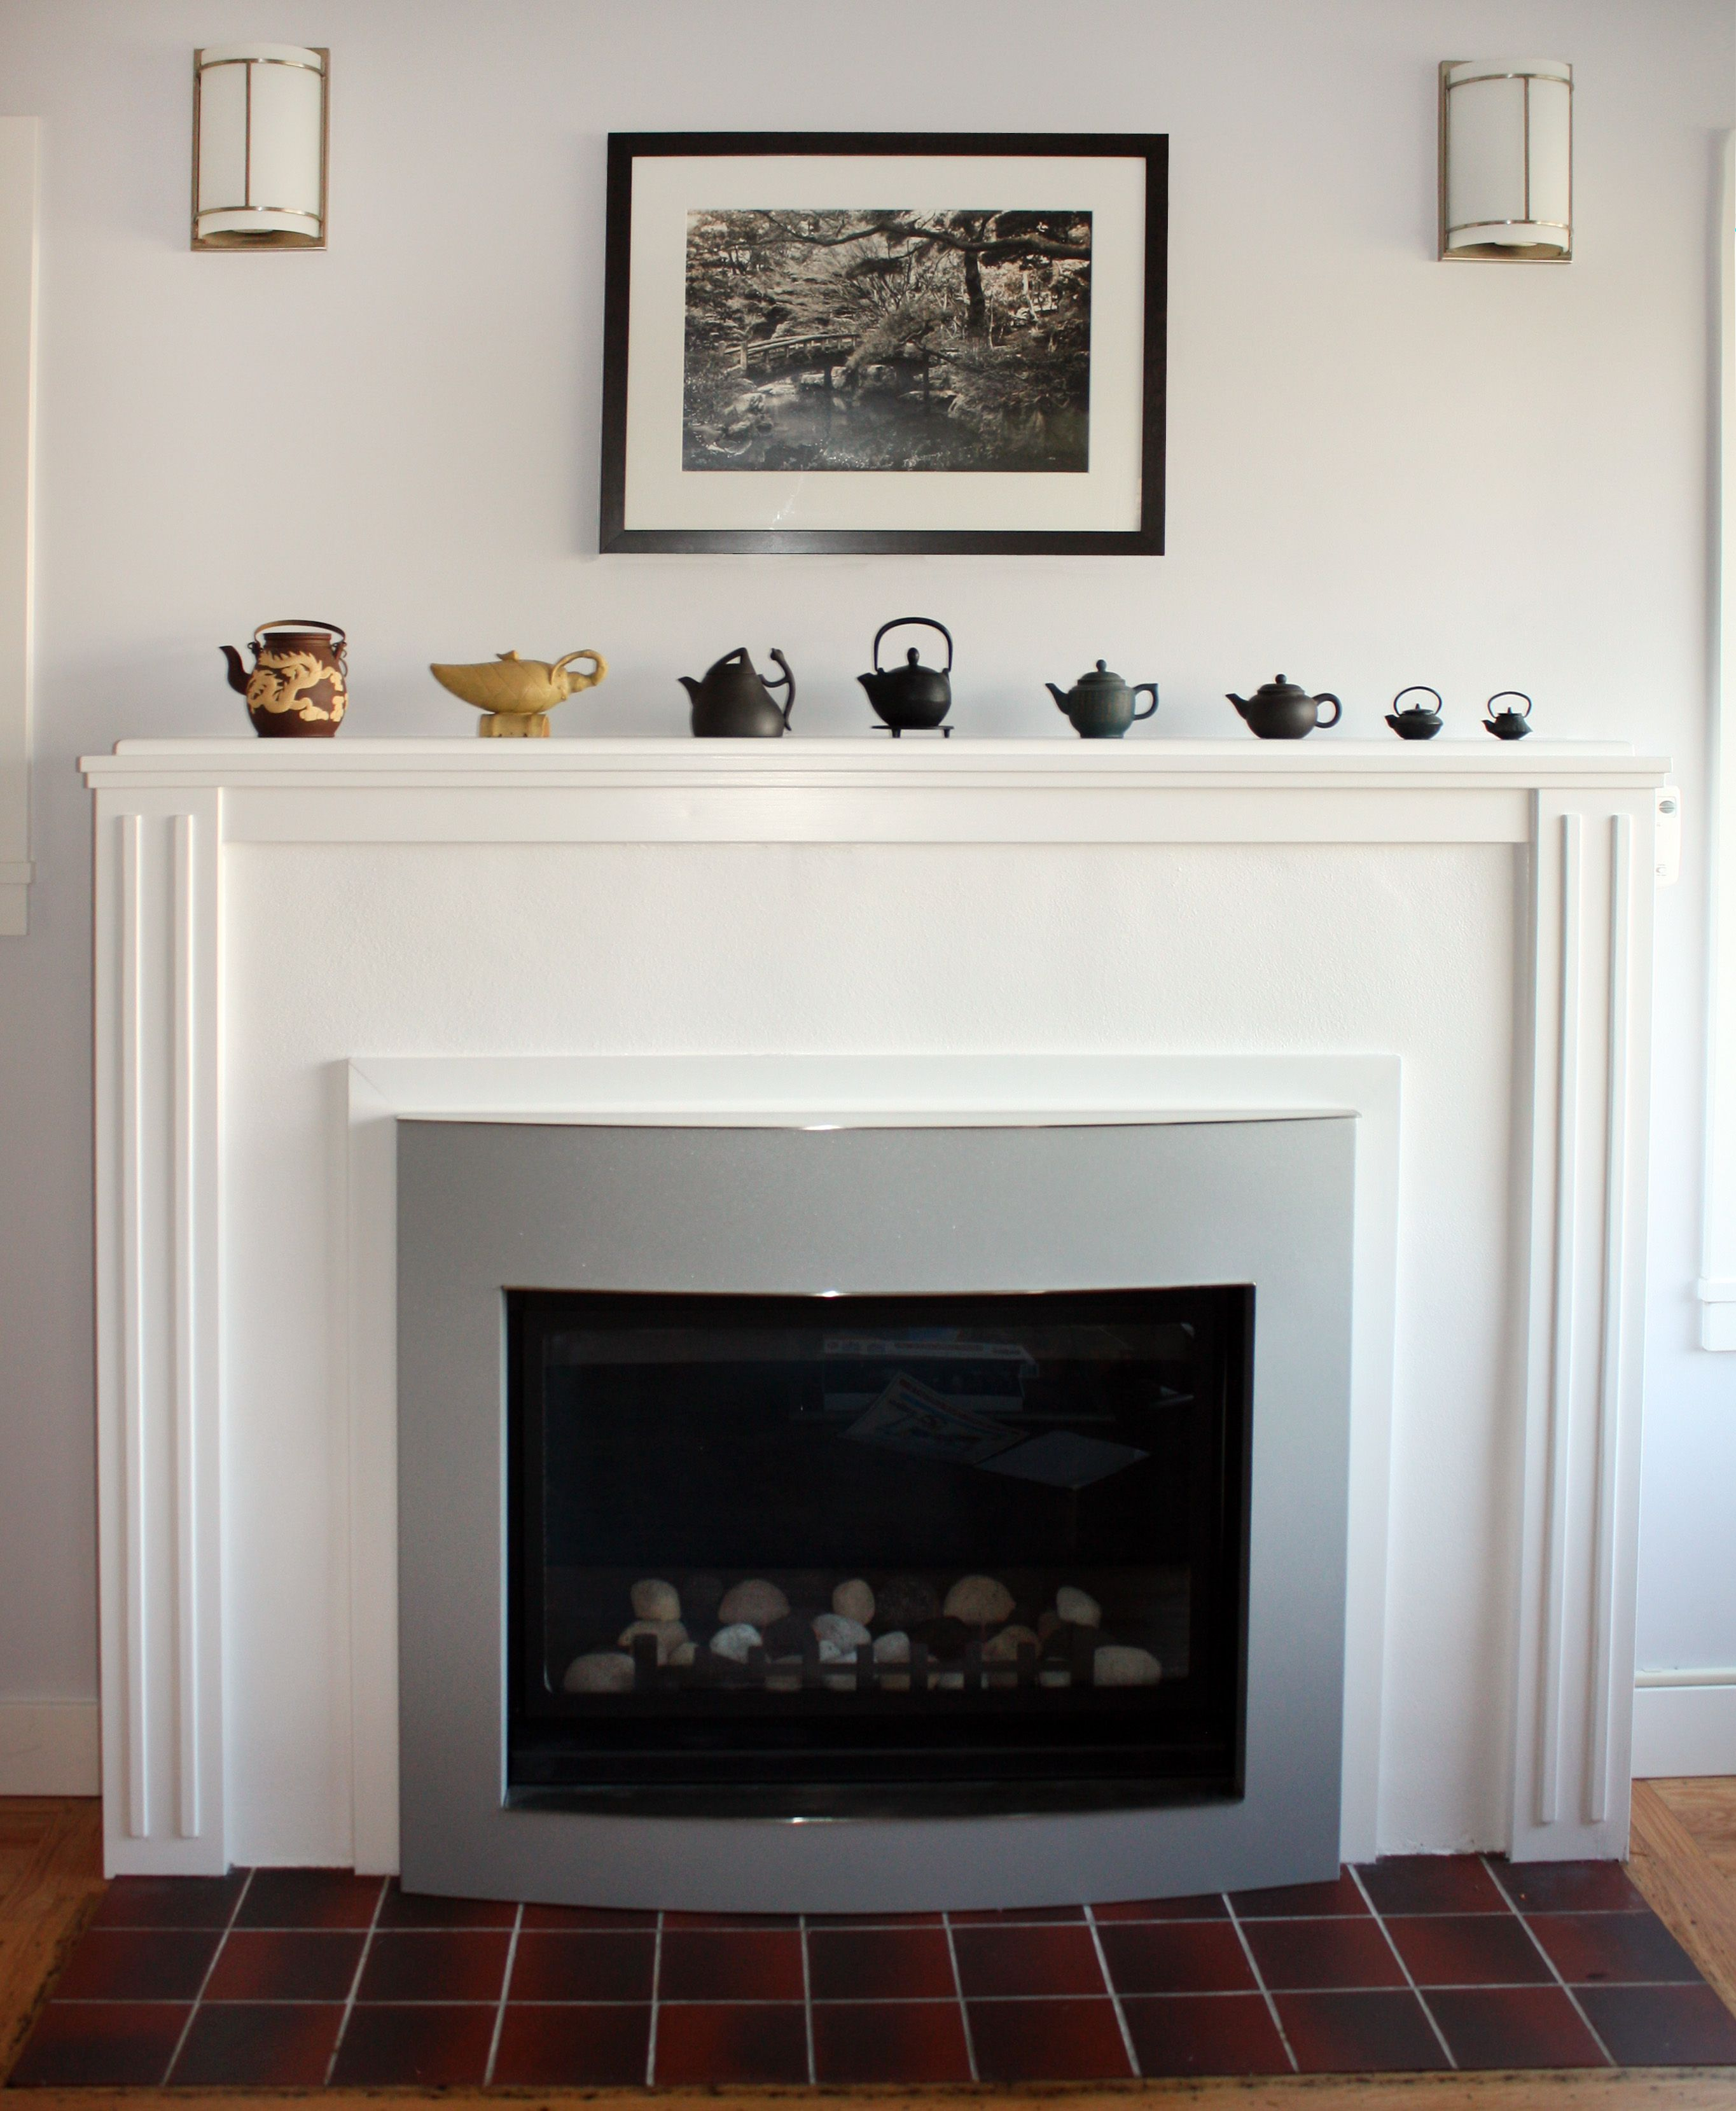 Breathe Easily This Fall And Winter With A Direct Vent Gas Insert Fireplace,  An